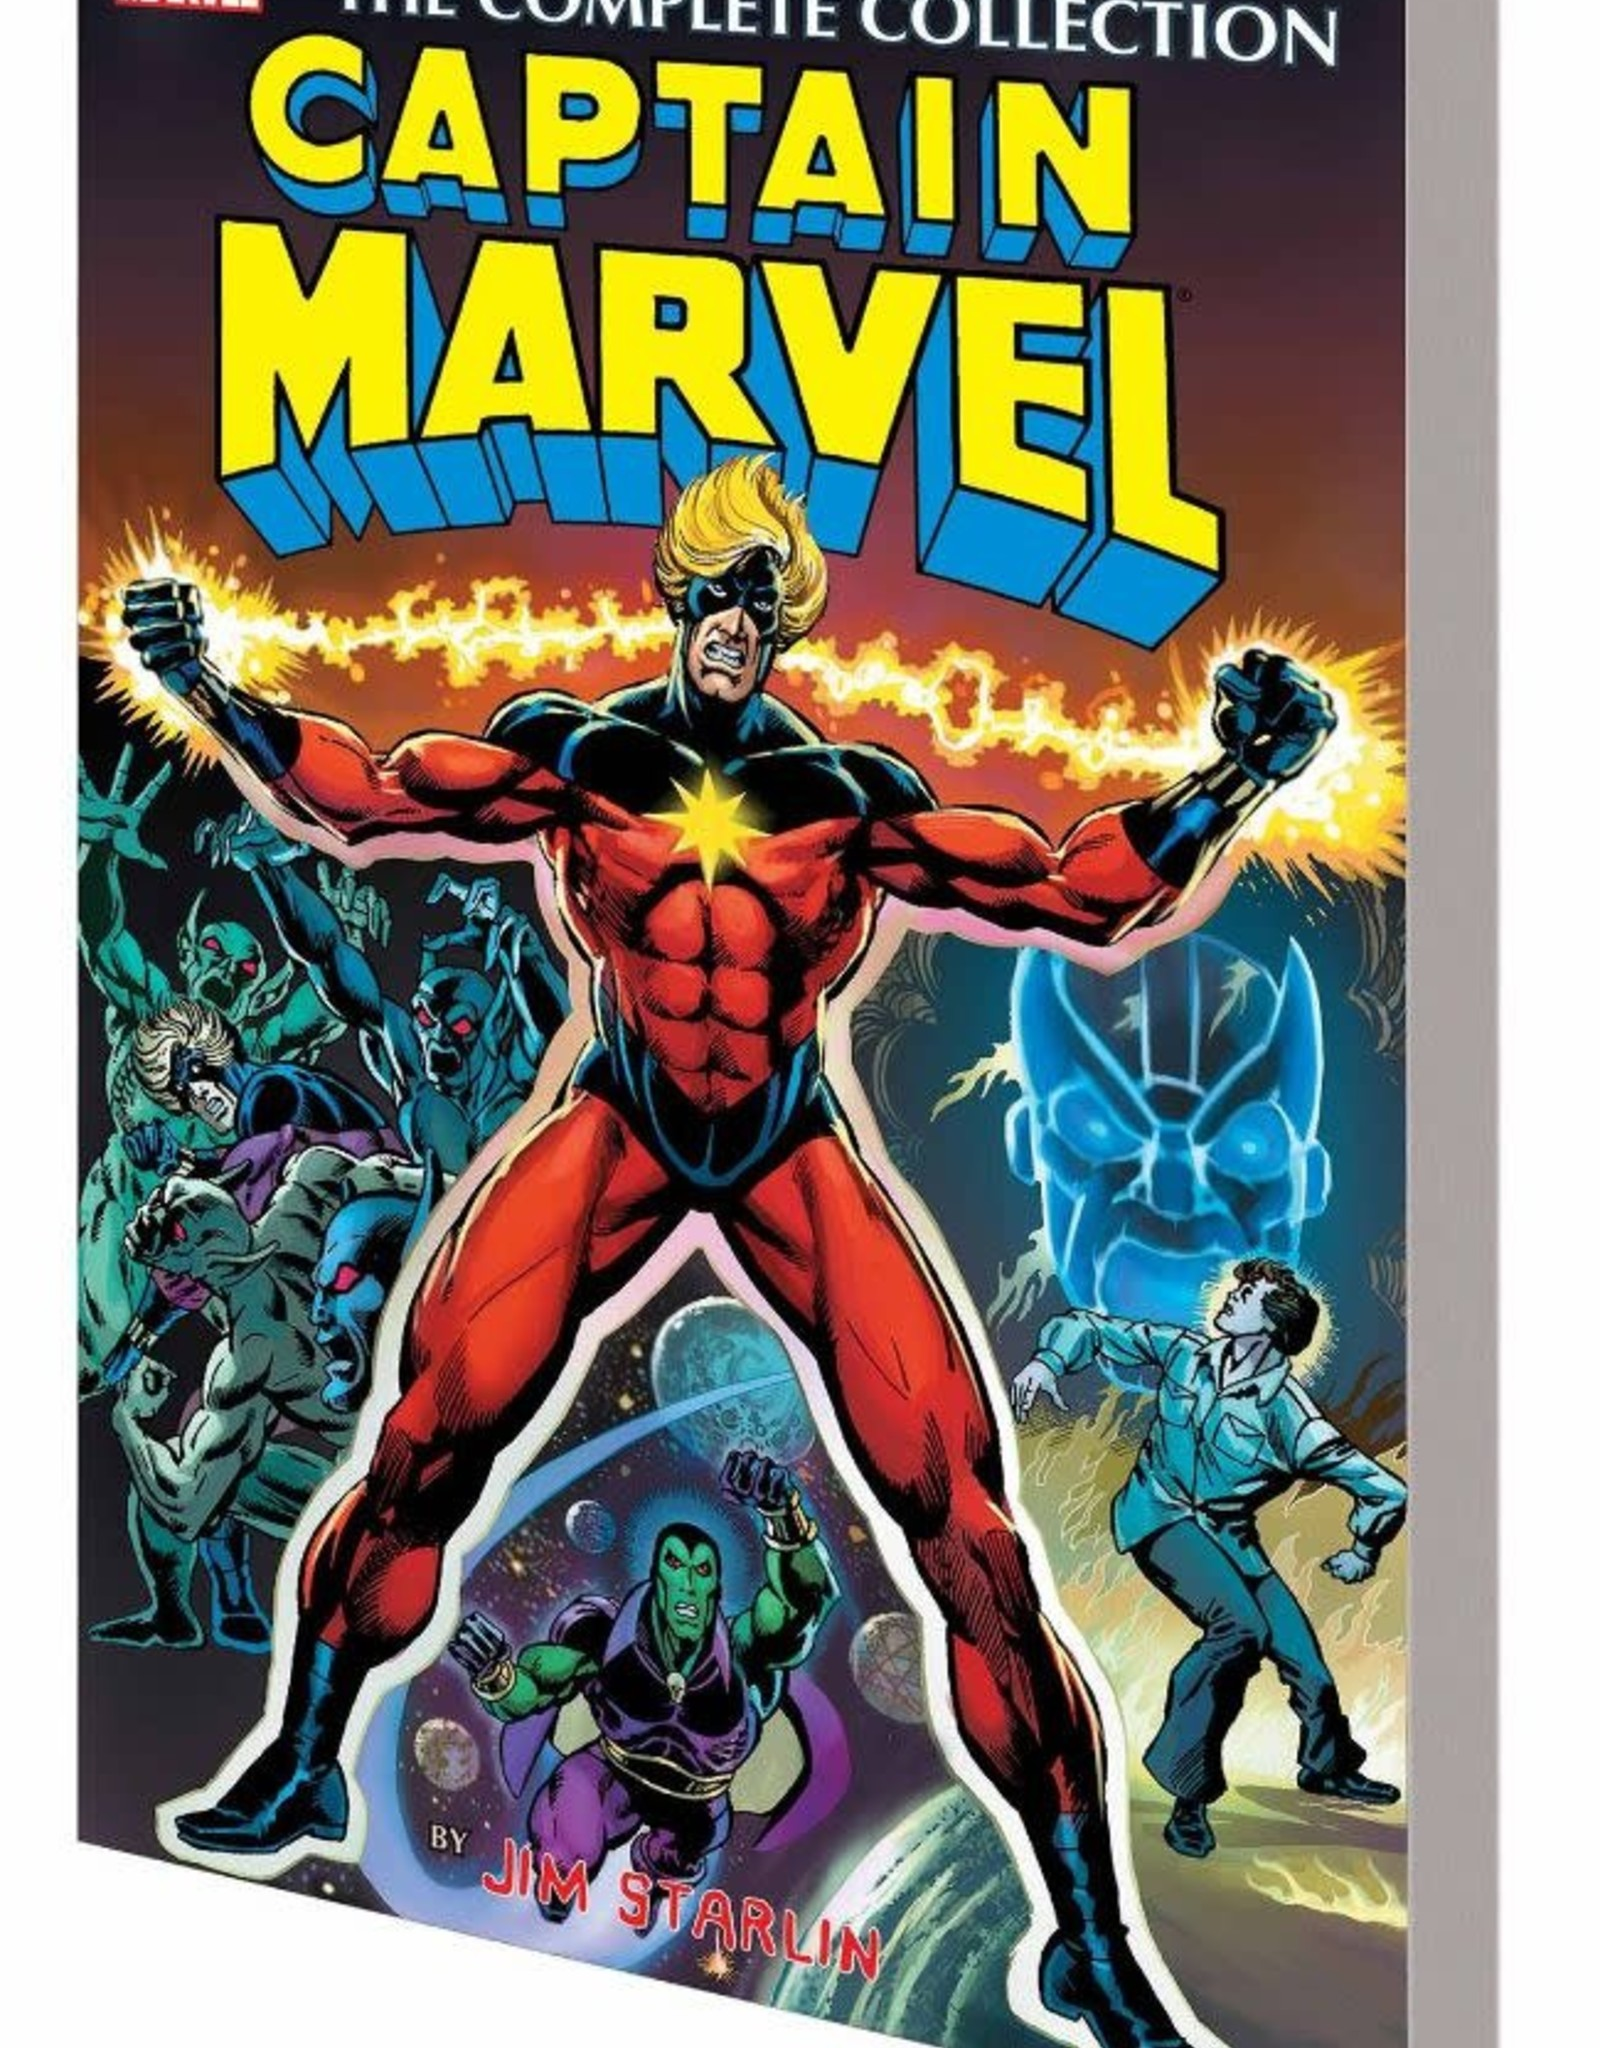 Marvel Comics Captain Marvel by Jim Starlin Complete Collection